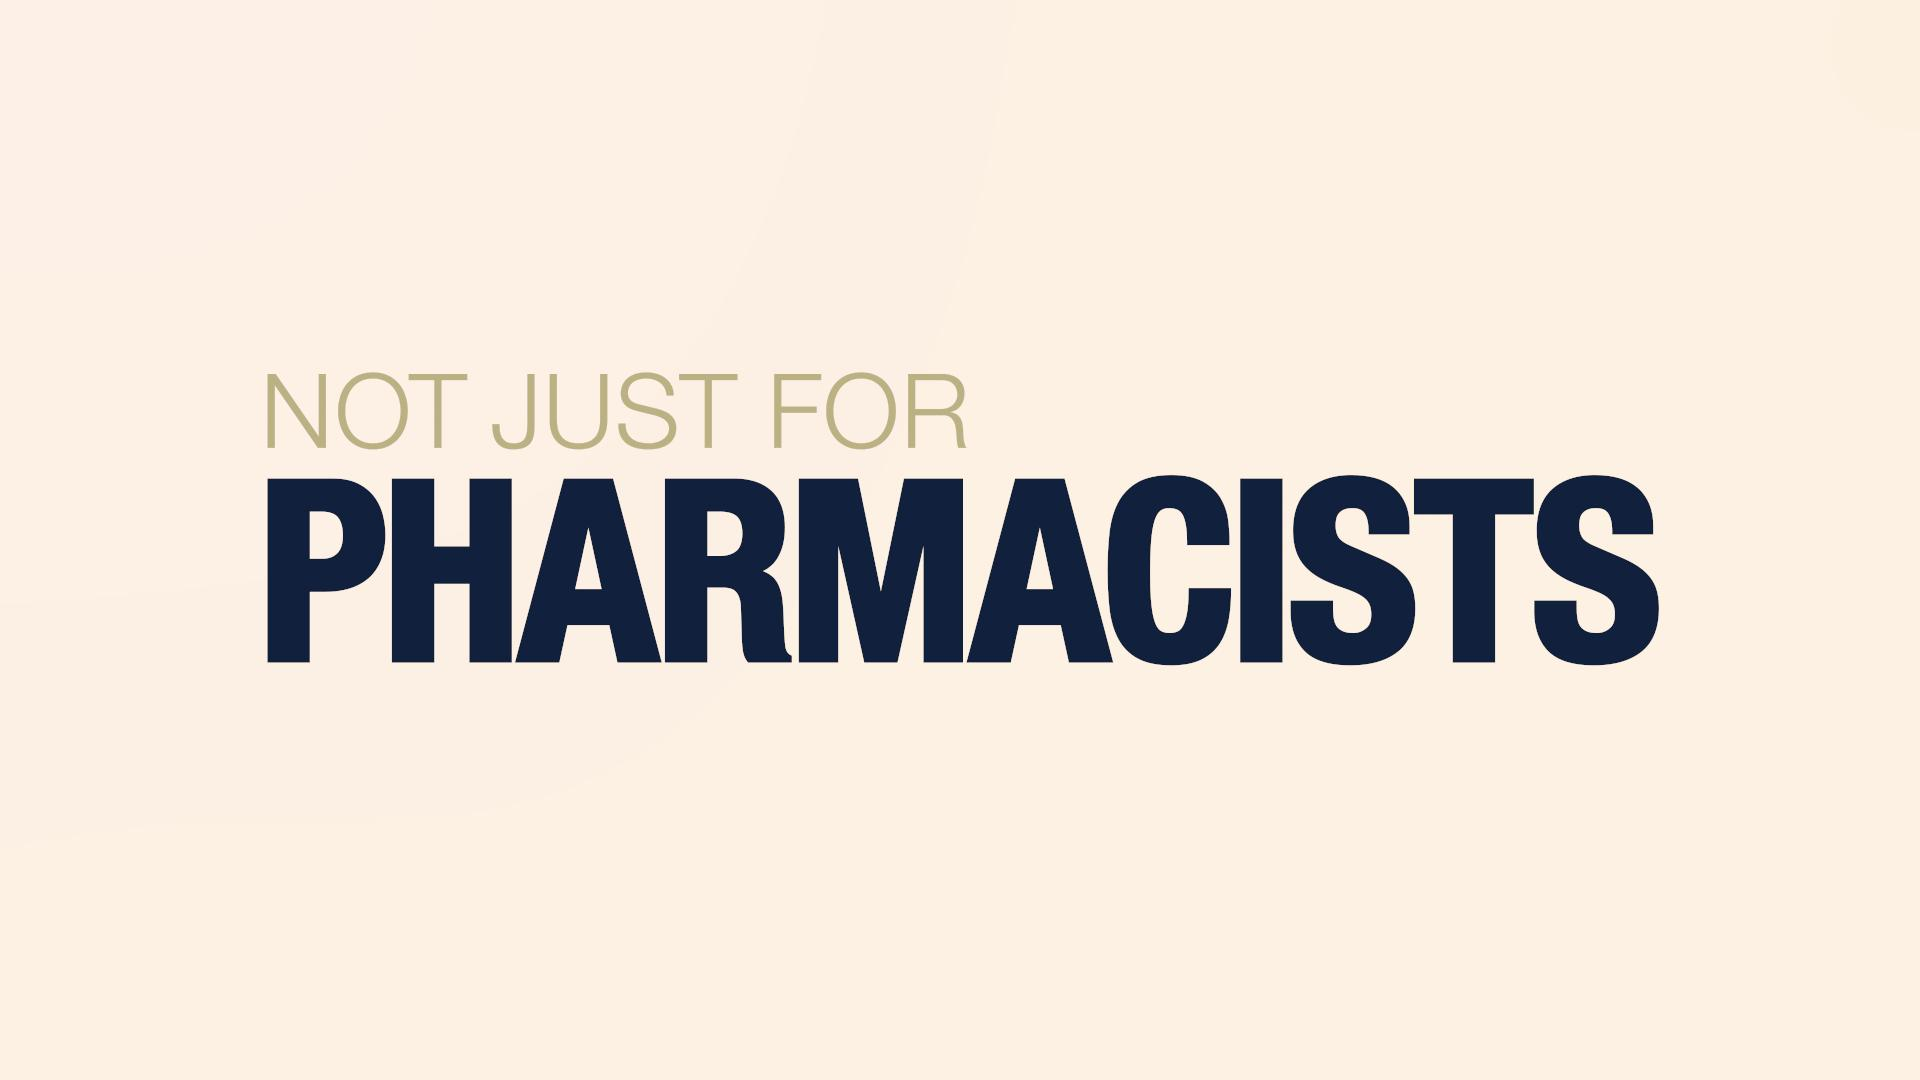 Not Just For Pharmacists